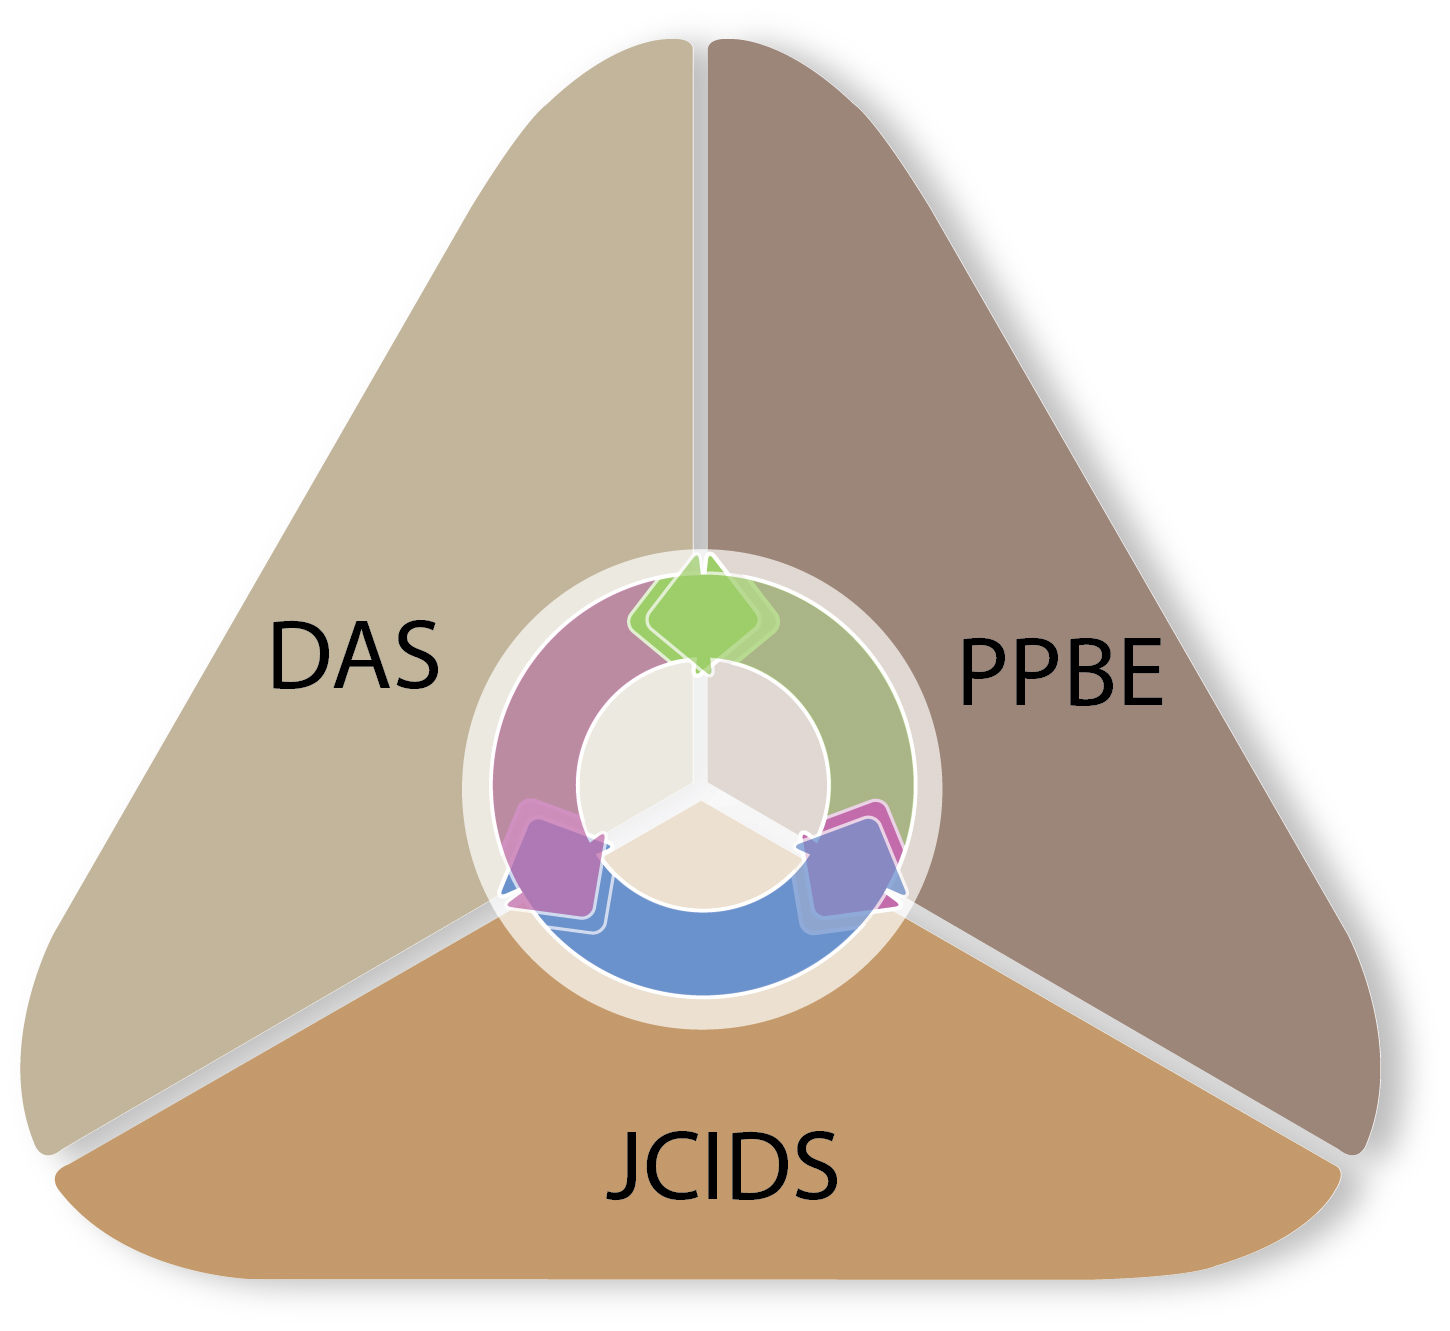 The Joint Capabilities Integration and Development System (JCIDS); the Planning, Programming, Budgeting and Execution (PPBE) process; and the Defense Acquisition System (DAS) determine every dollar received, every effort tackled and every schedule built by a PM.